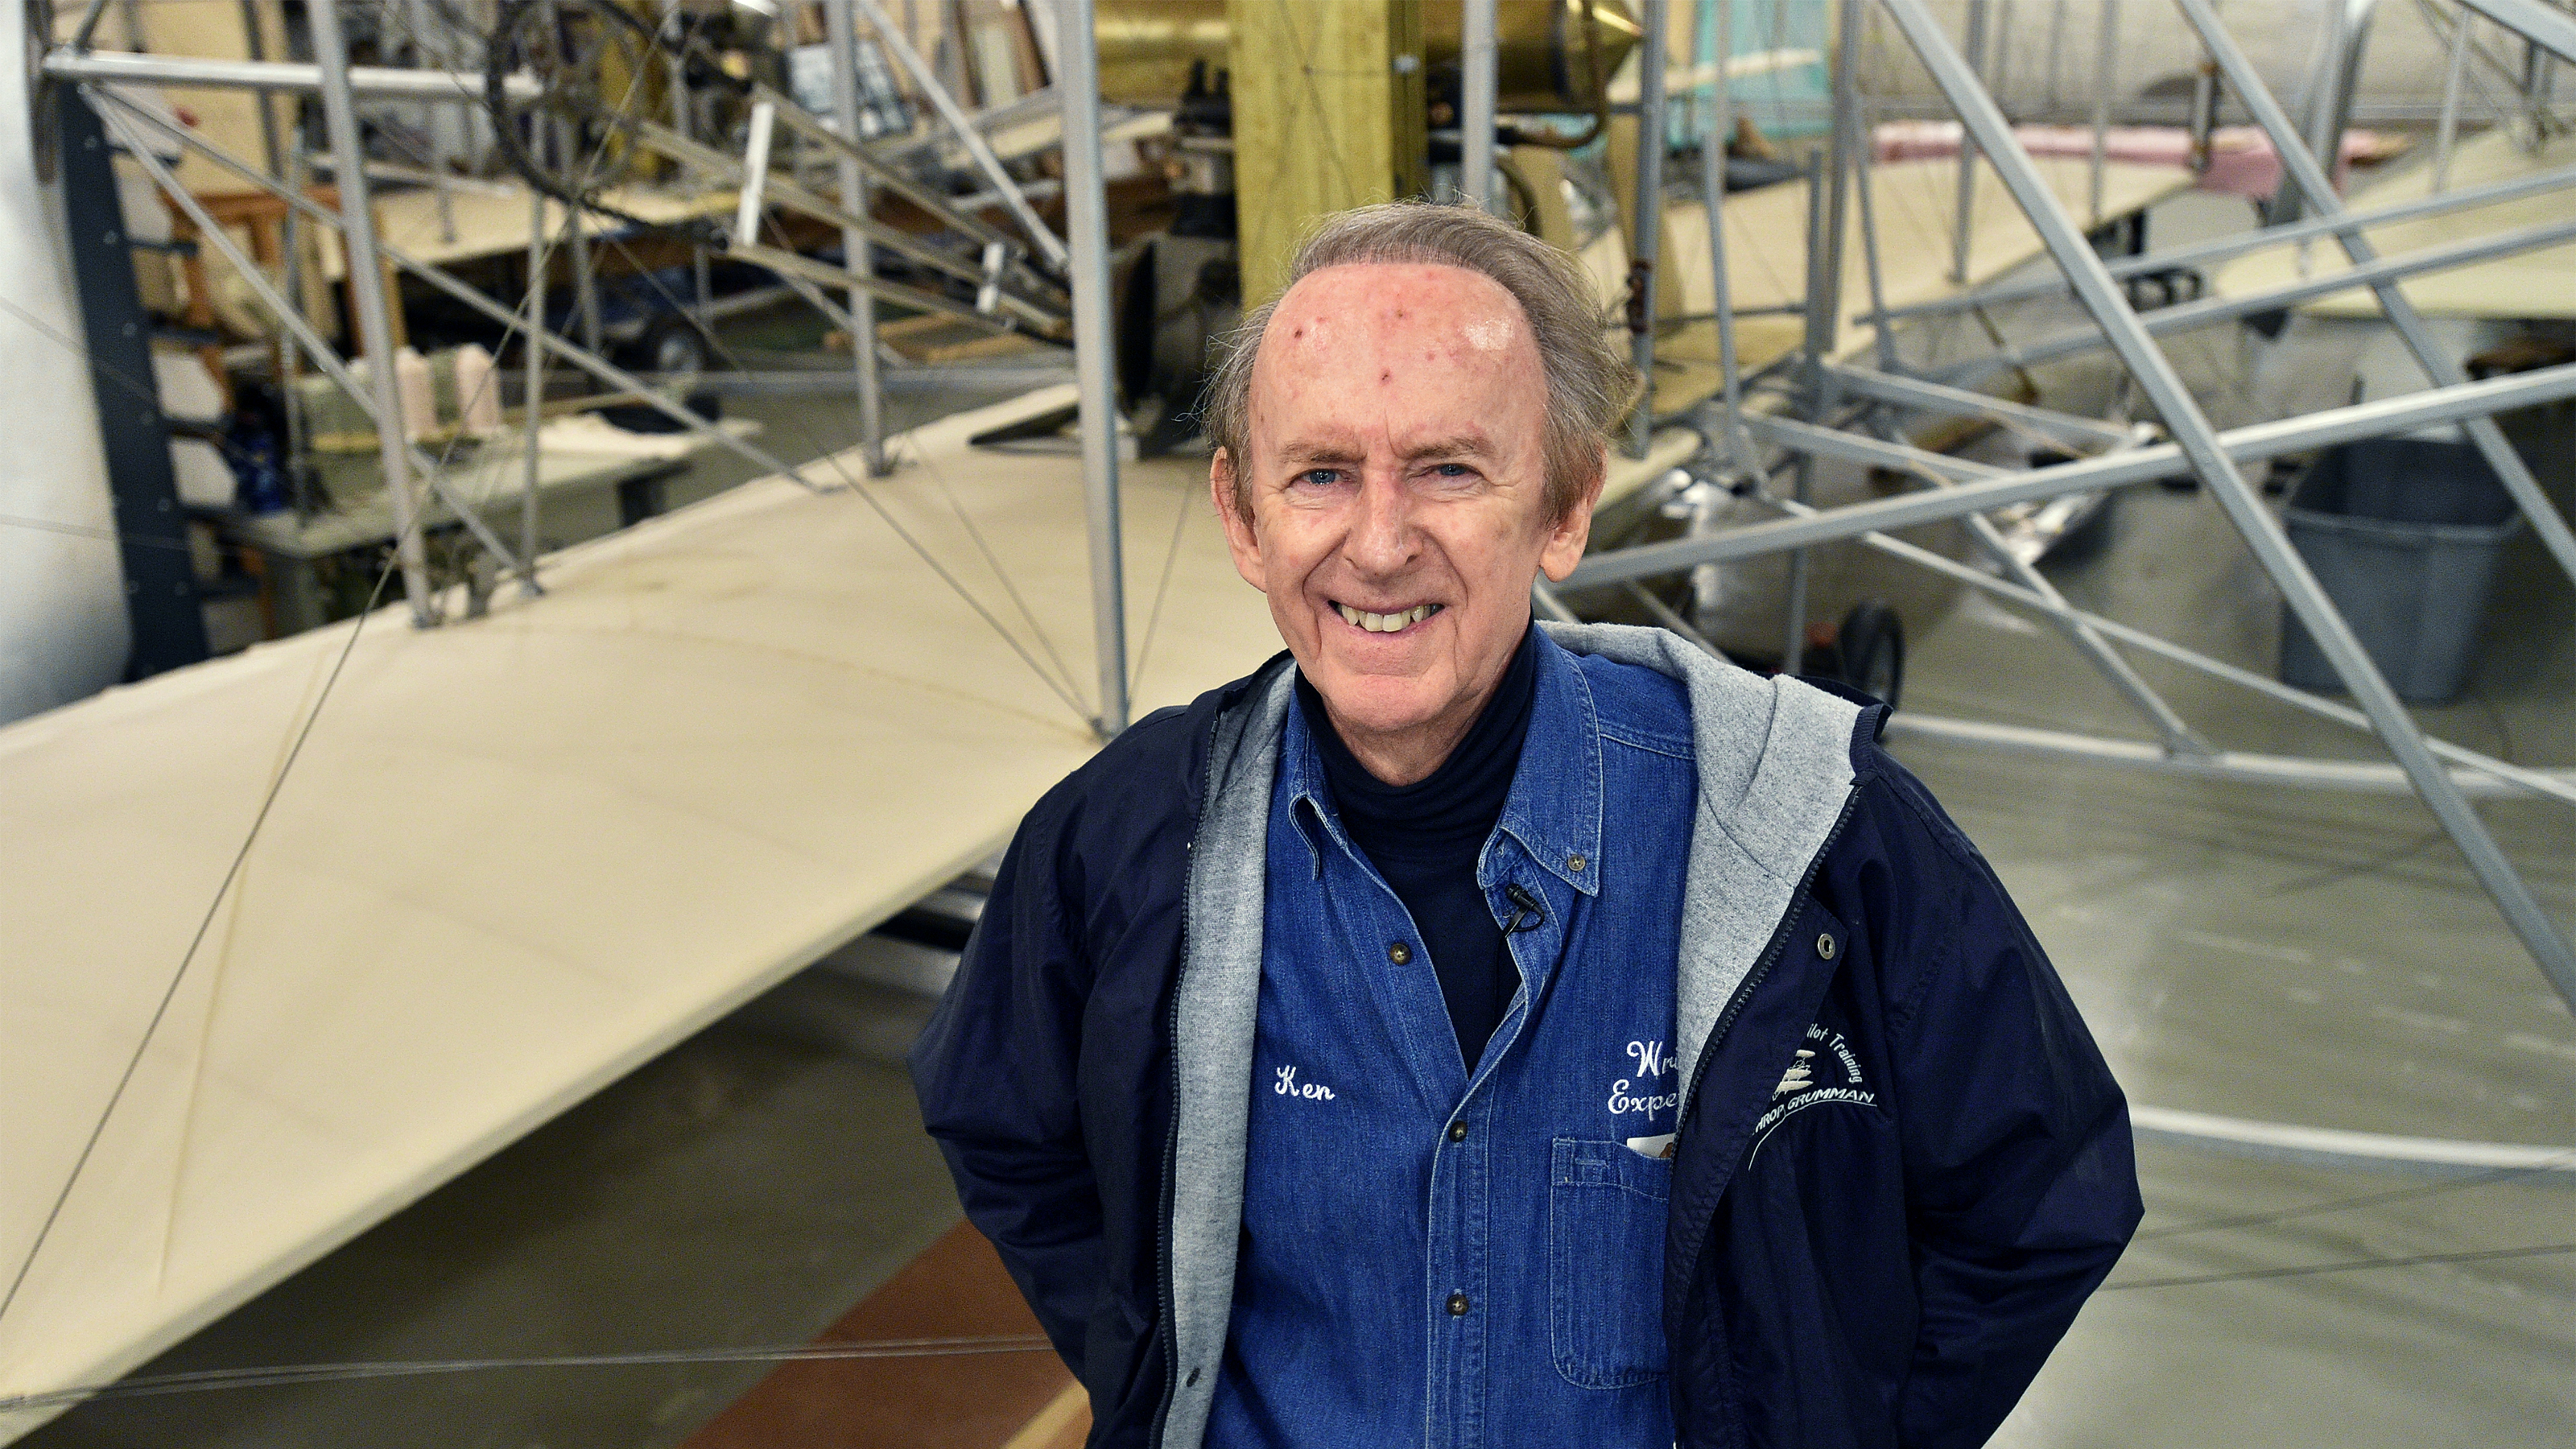 The Wright Experience Museum's Ken Hyde, a retired American Airlines pilot, uses science, technology, engineering, and math concepts to re-create the Wright brothers' aircraft designs in Warrenton, Virginia. Photo by David Tulis.